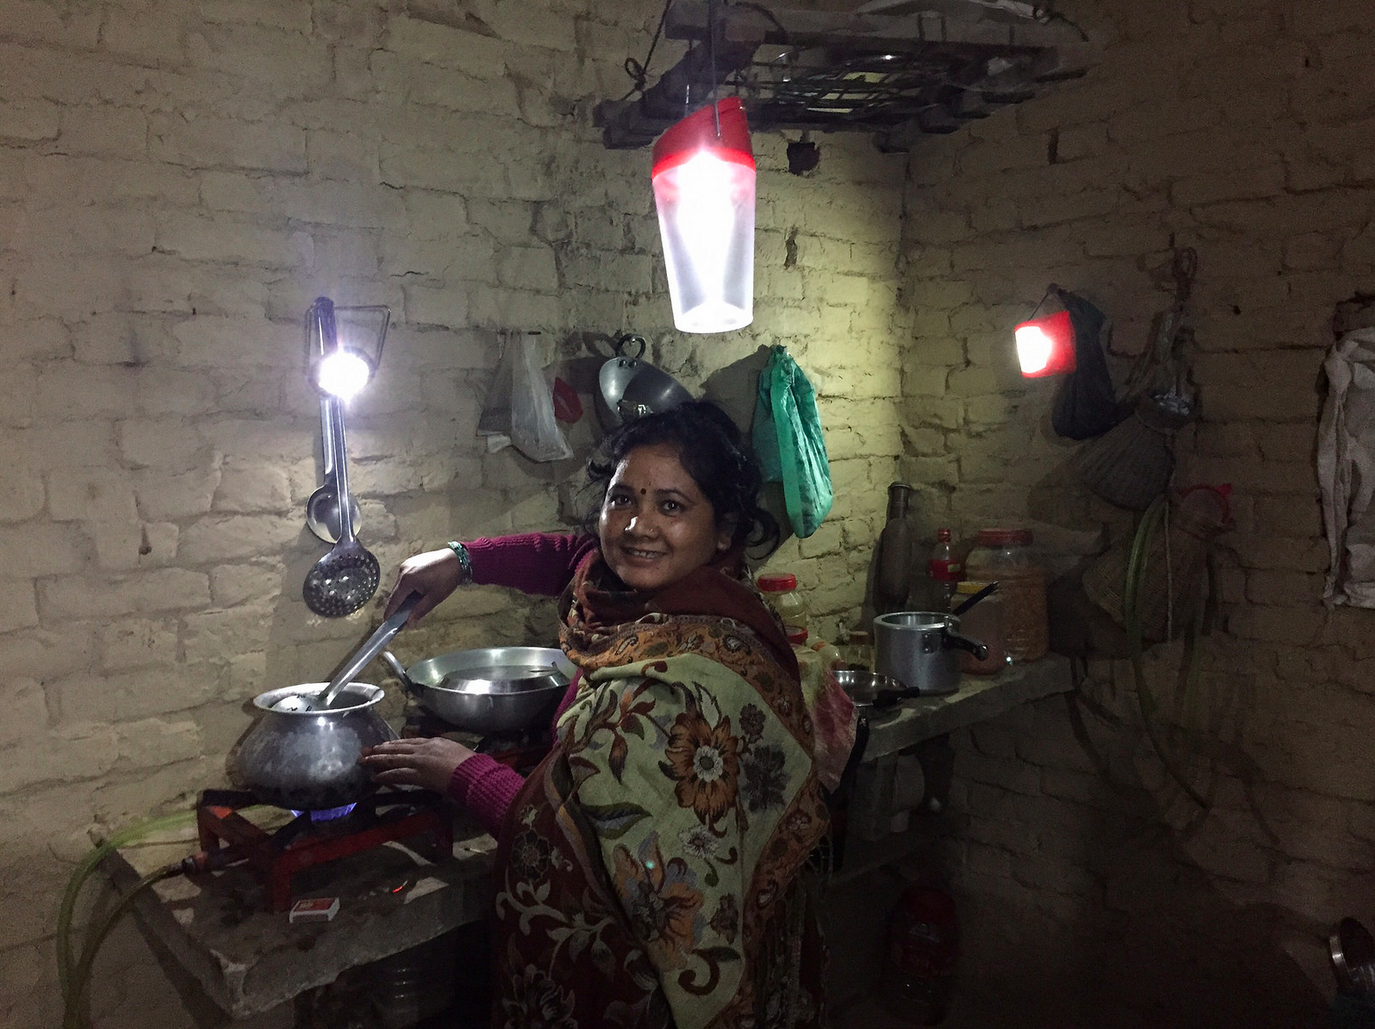 Visiting locals in Bardiya to test the solar lights which are safer and cleaner than traditional kerosene lanterns popular in many homes.